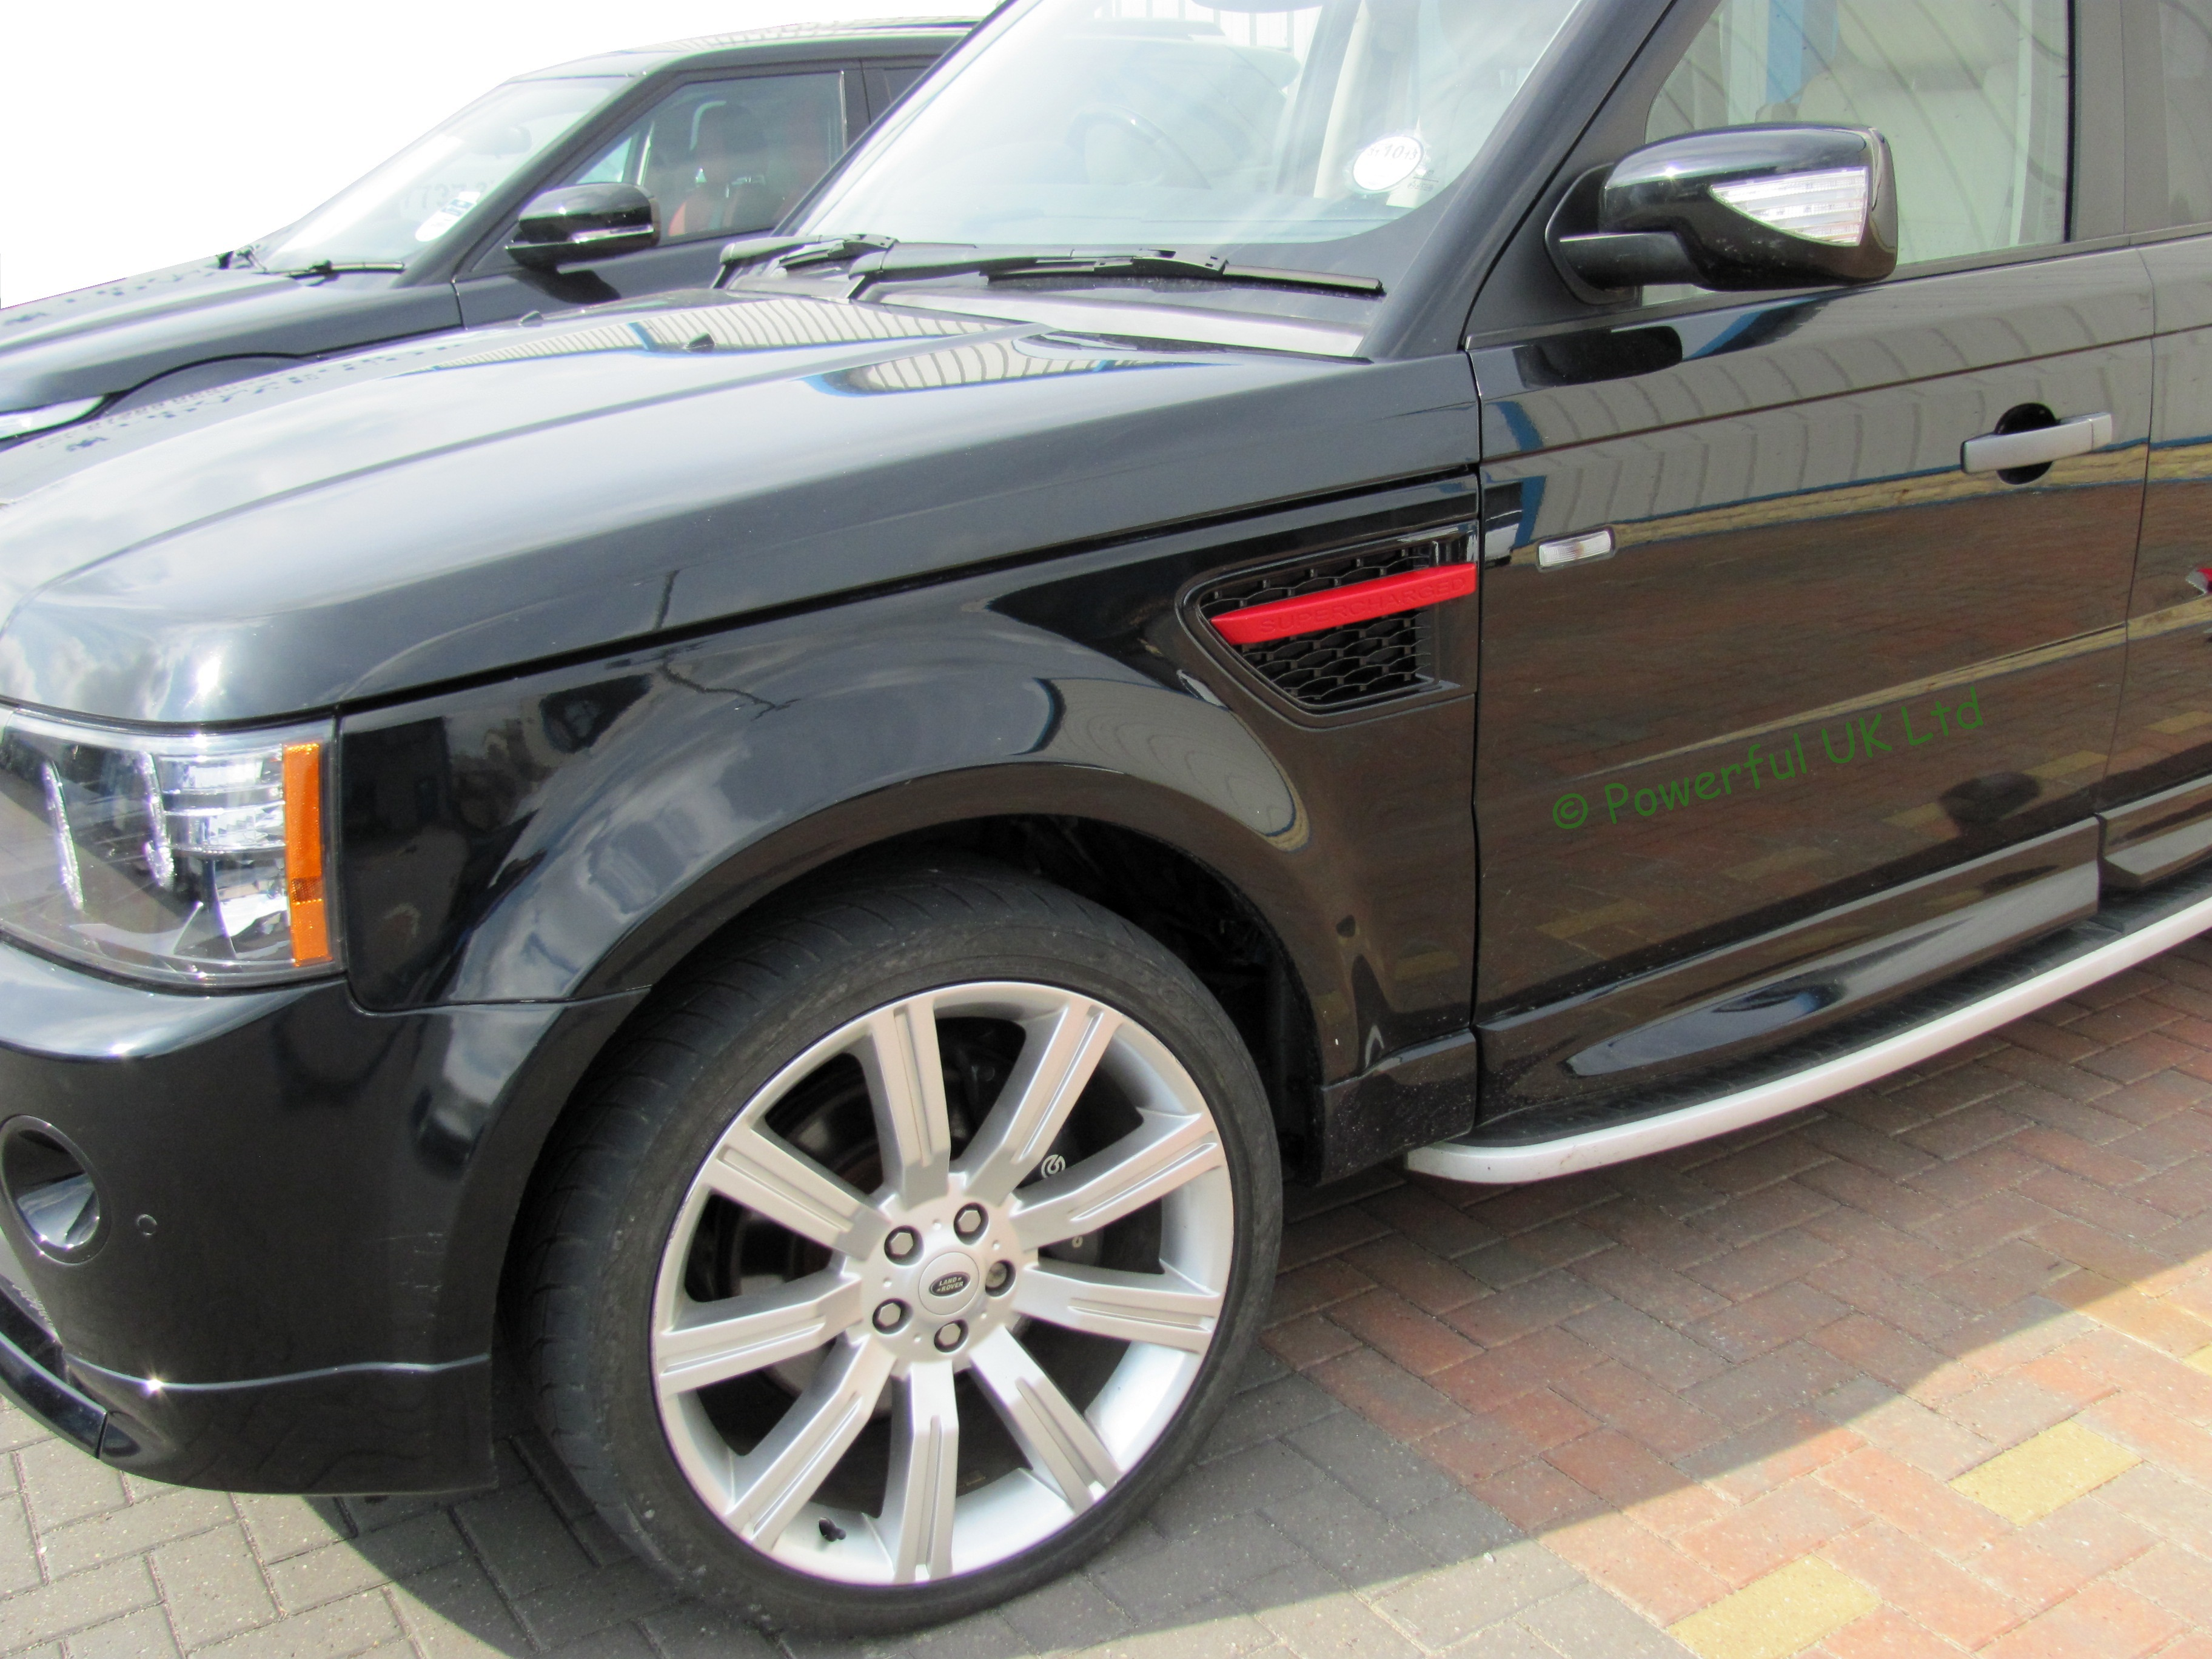 Range Rover L322 Interior Upgrade >> Conversion Range Rover Vogue From 2005 To 2012 | Autos Post